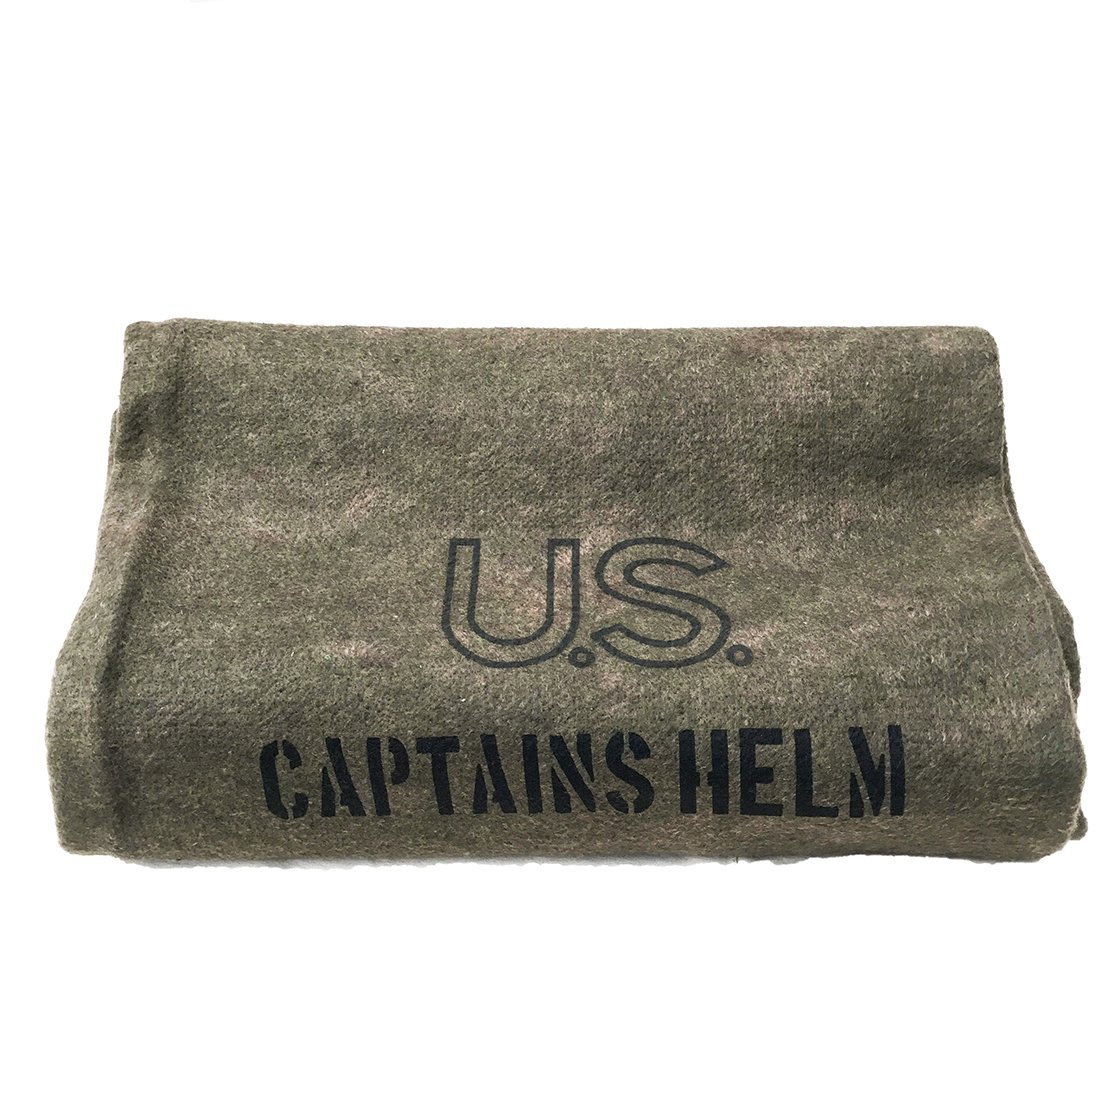 CAPTAINS HELM    #U.S. WOOL BLANKET